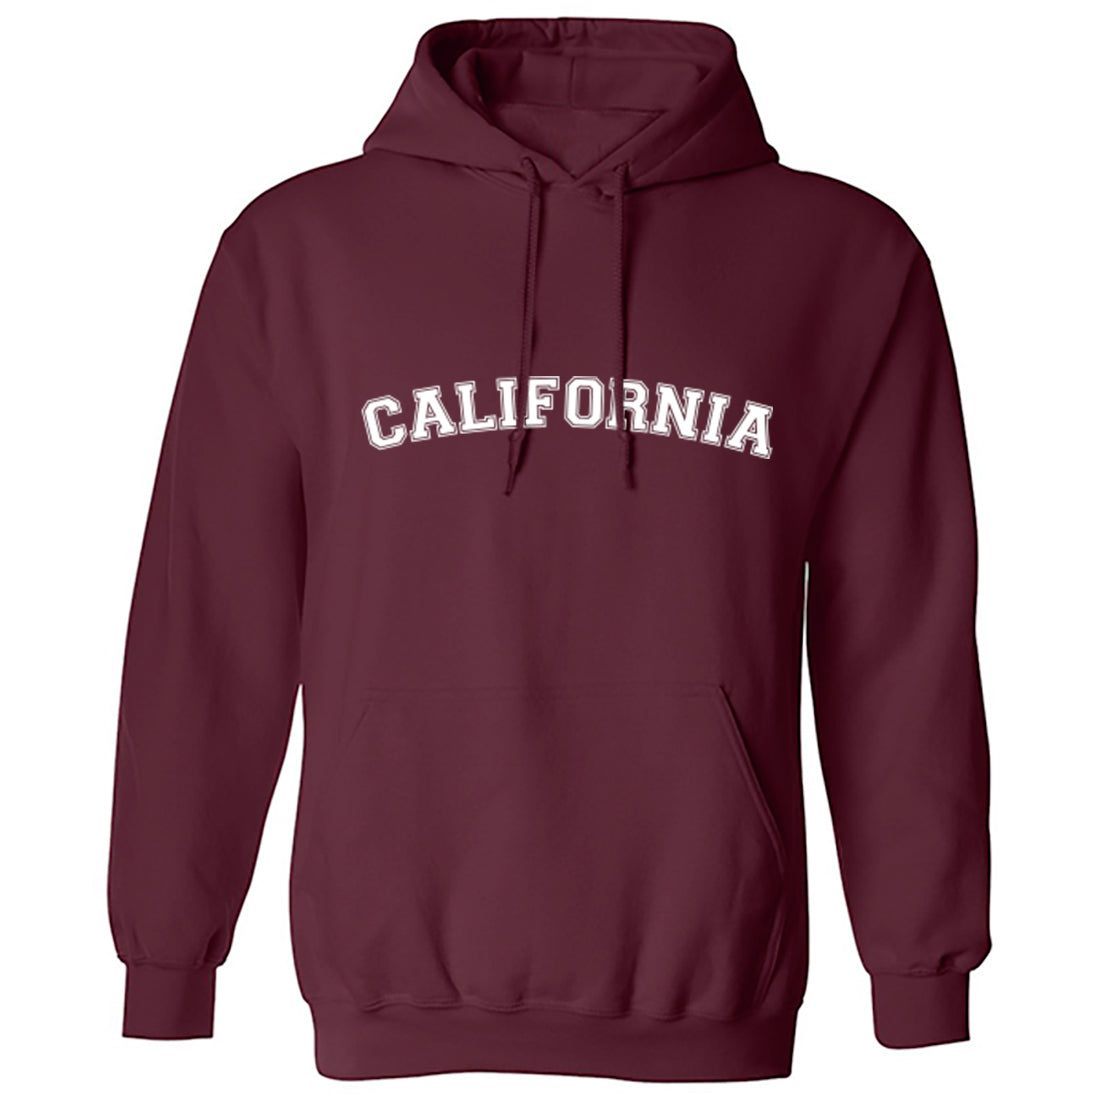 California American Type Unisex Hoodie K1089 - Illustrated Identity Ltd.